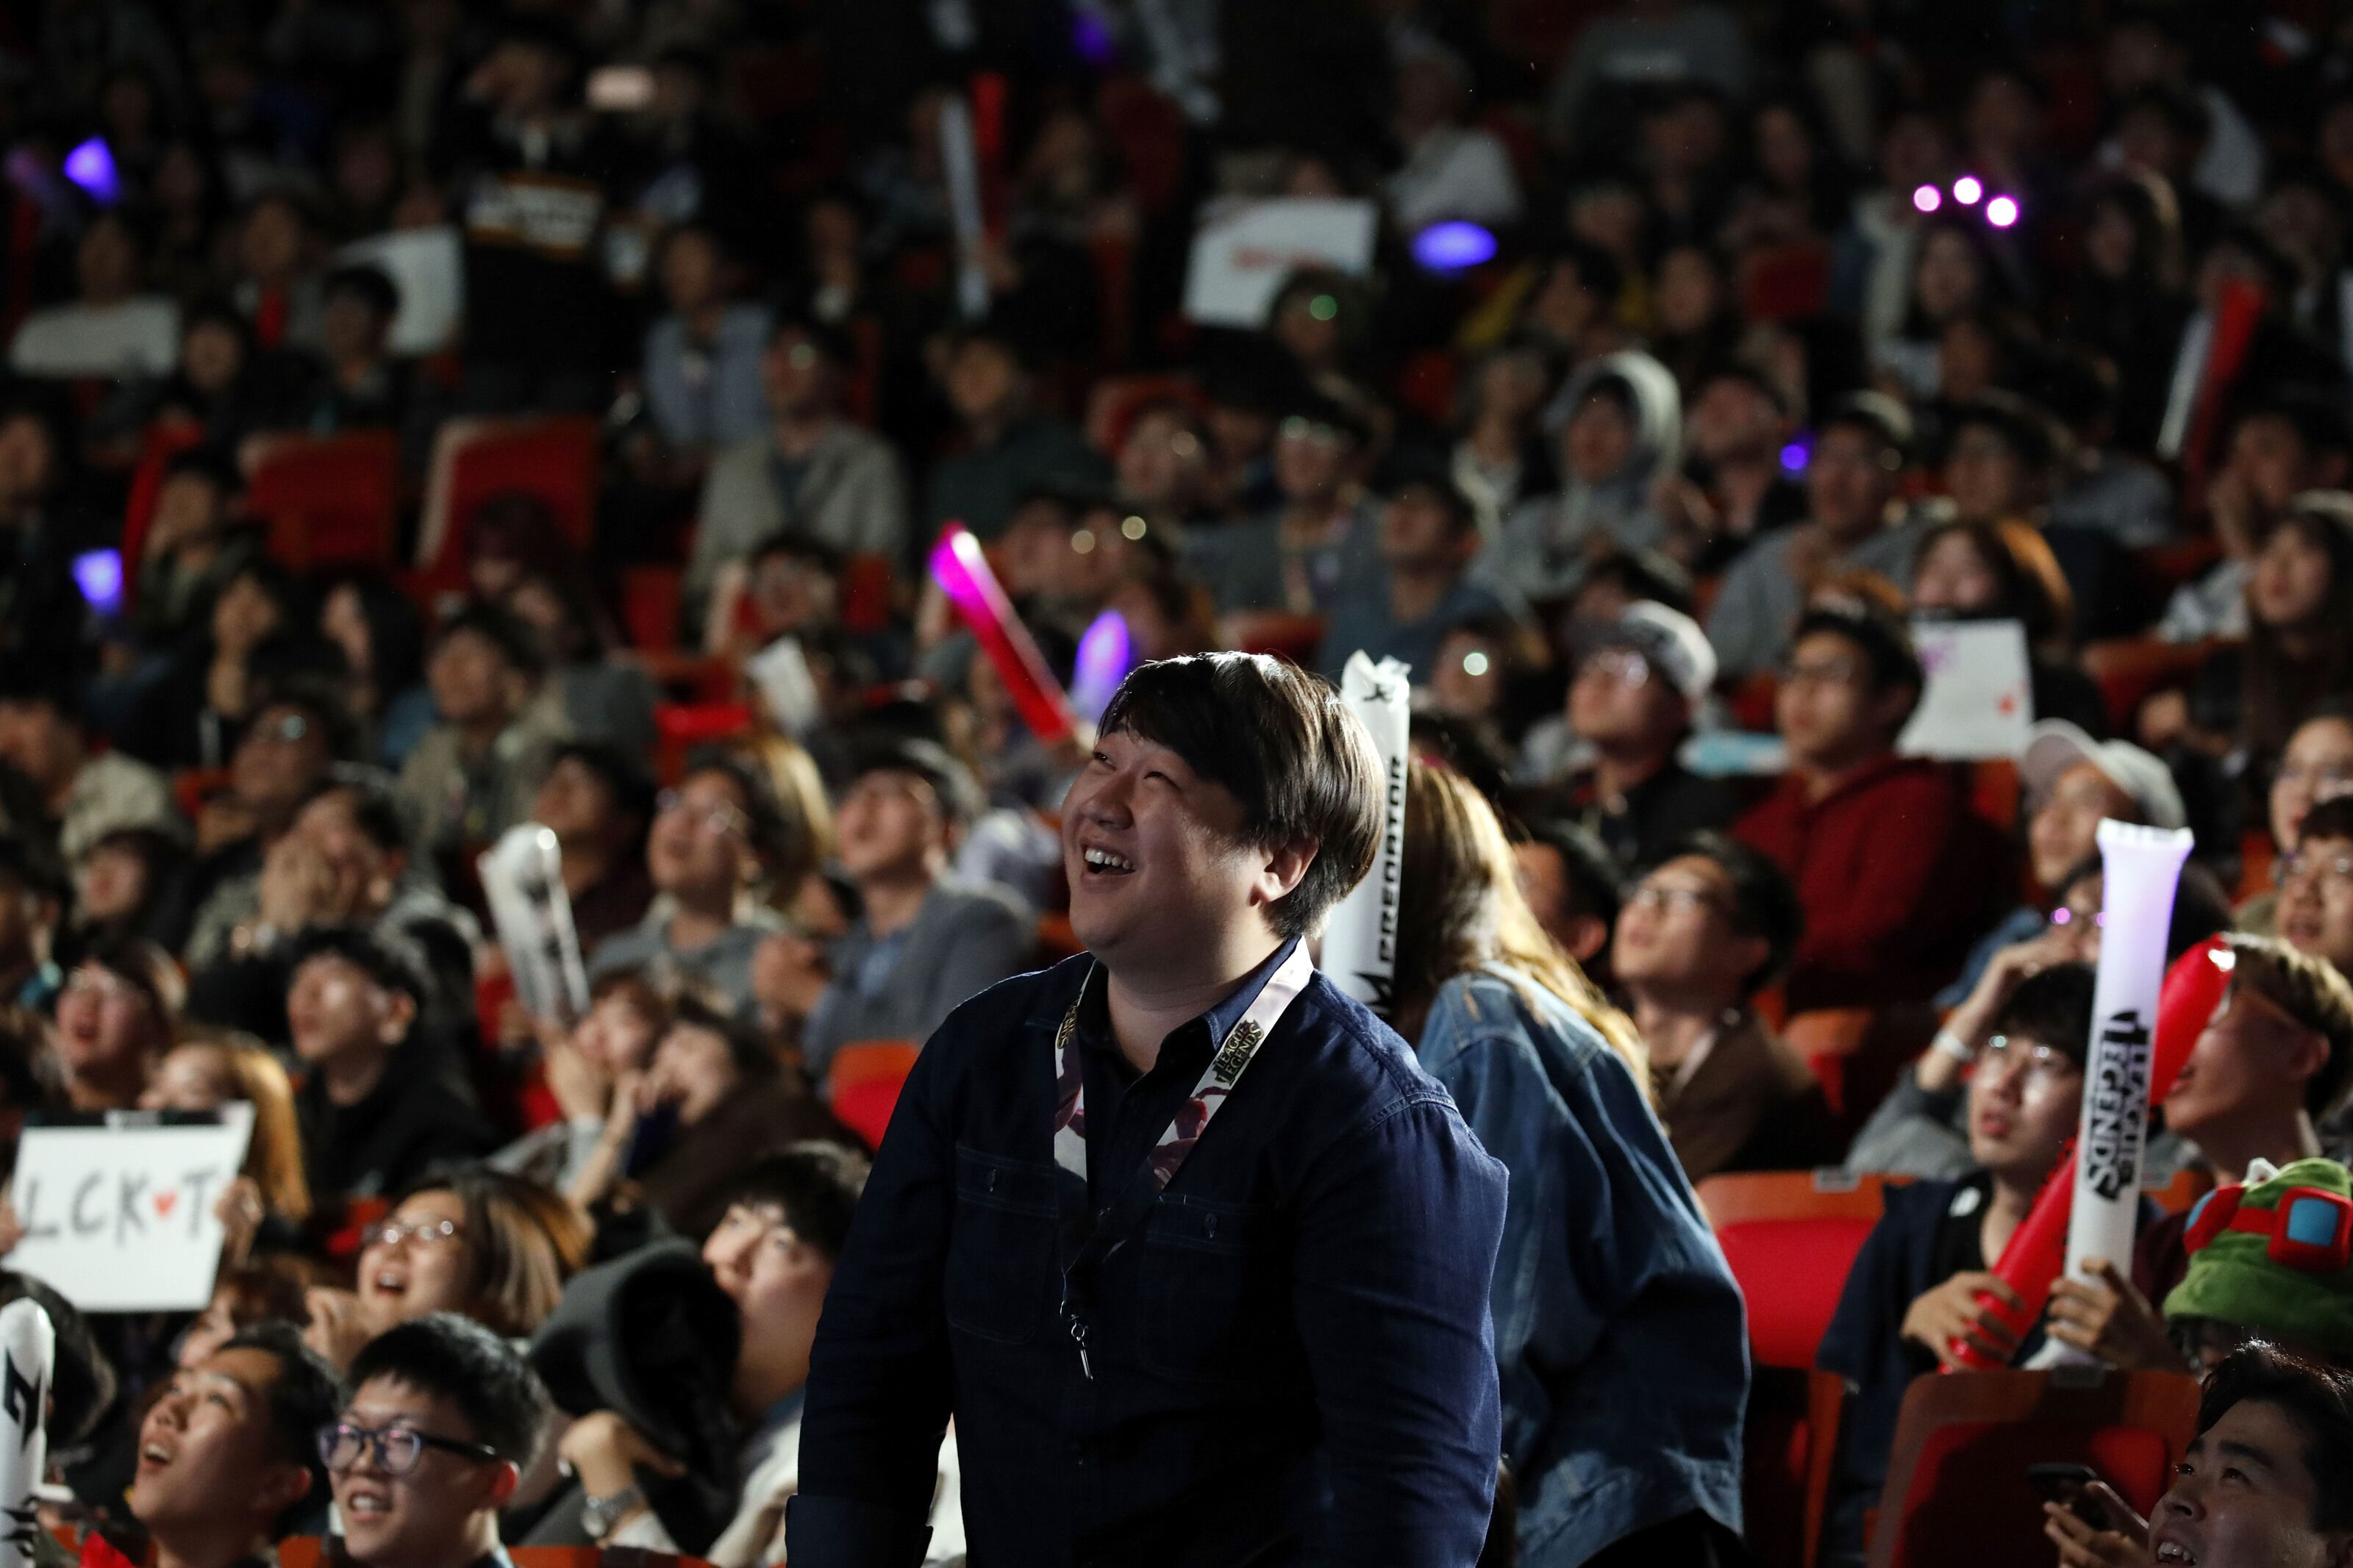 LPL player power ranking: 4 players who have surprised us